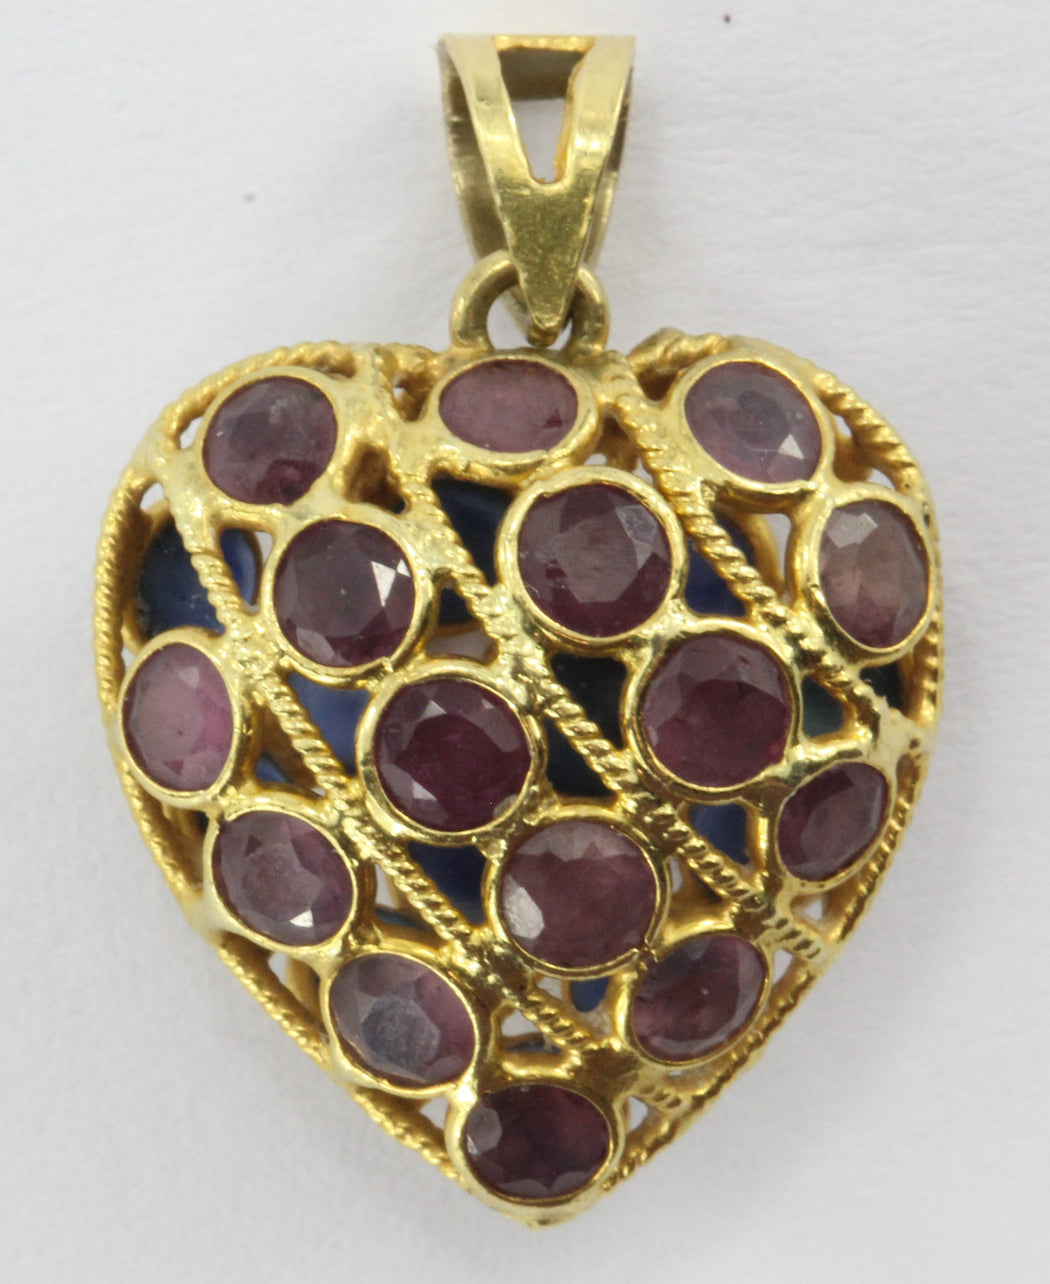 18k yellow gold ruby and sapphire double sided puffy heart charm - Queen May